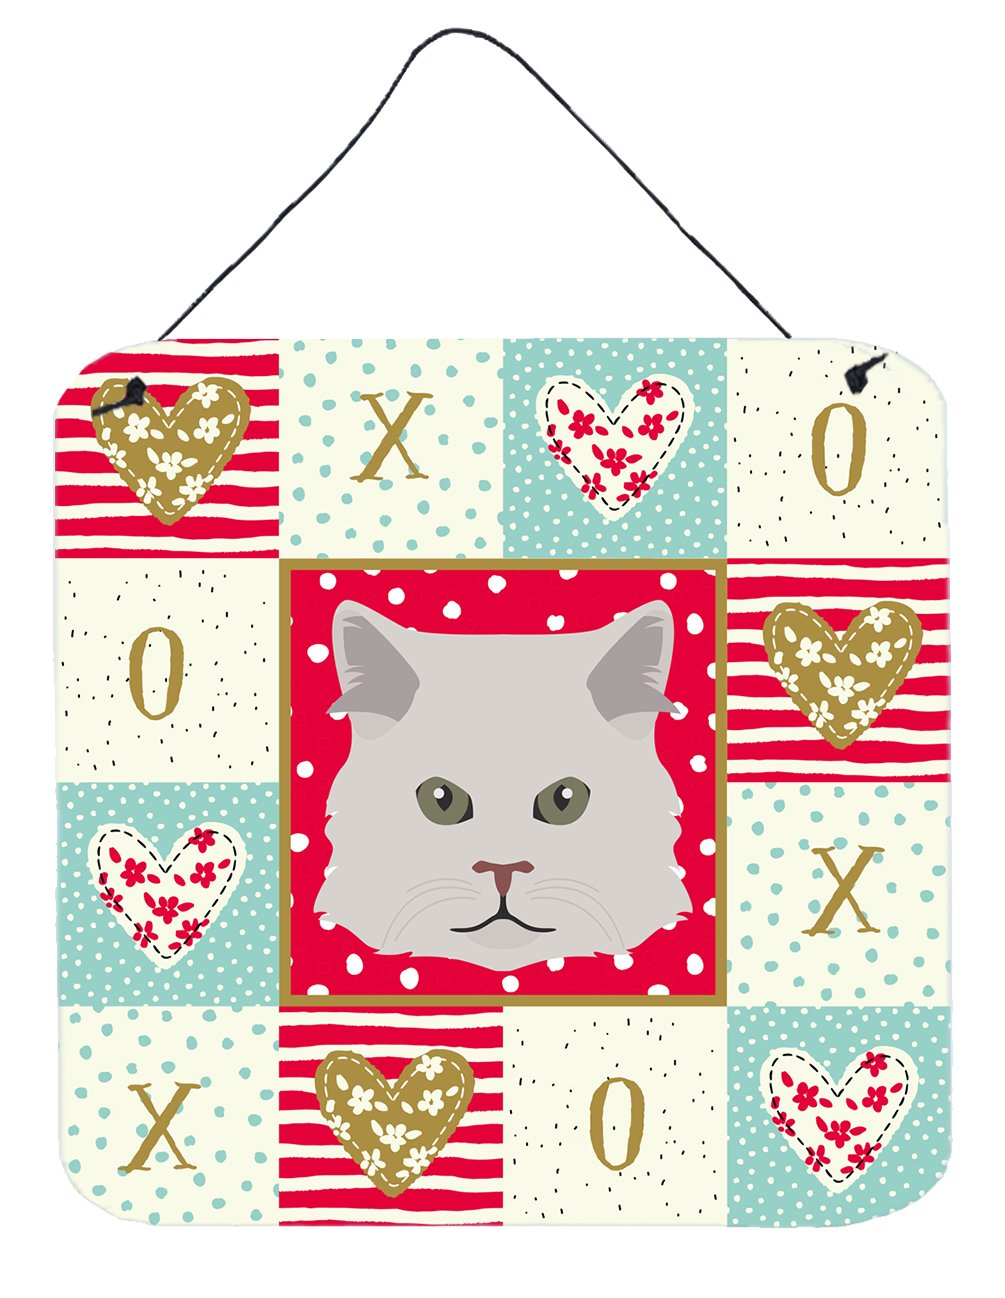 Persian Traditional Cat Love Wall or Door Hanging Prints CK5147DS66 by Caroline's Treasures